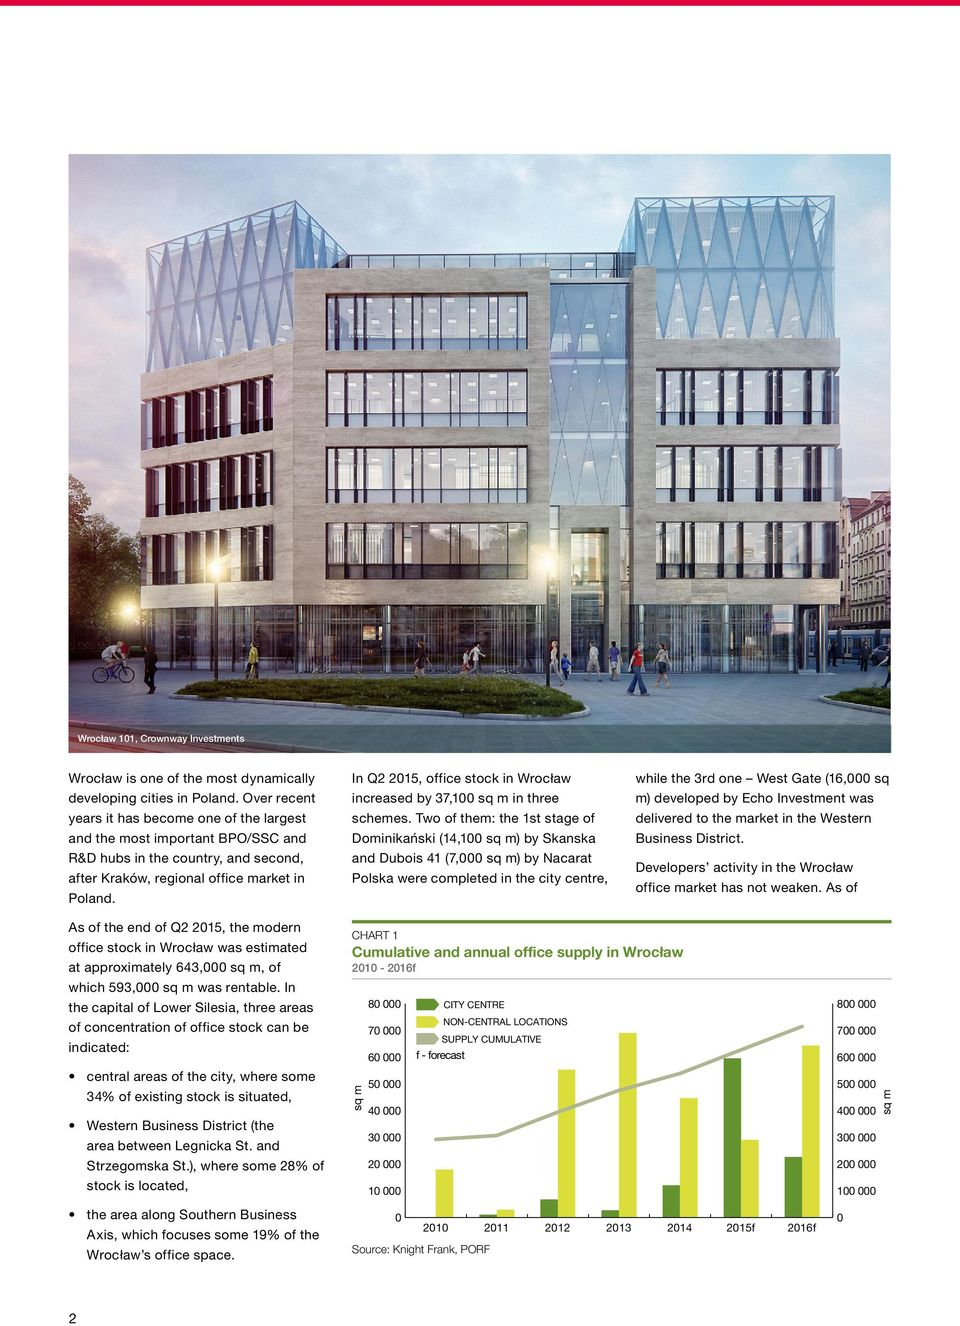 In Q2 215, office stock in Wrocław increased by 37,1 sq m in three schemes.